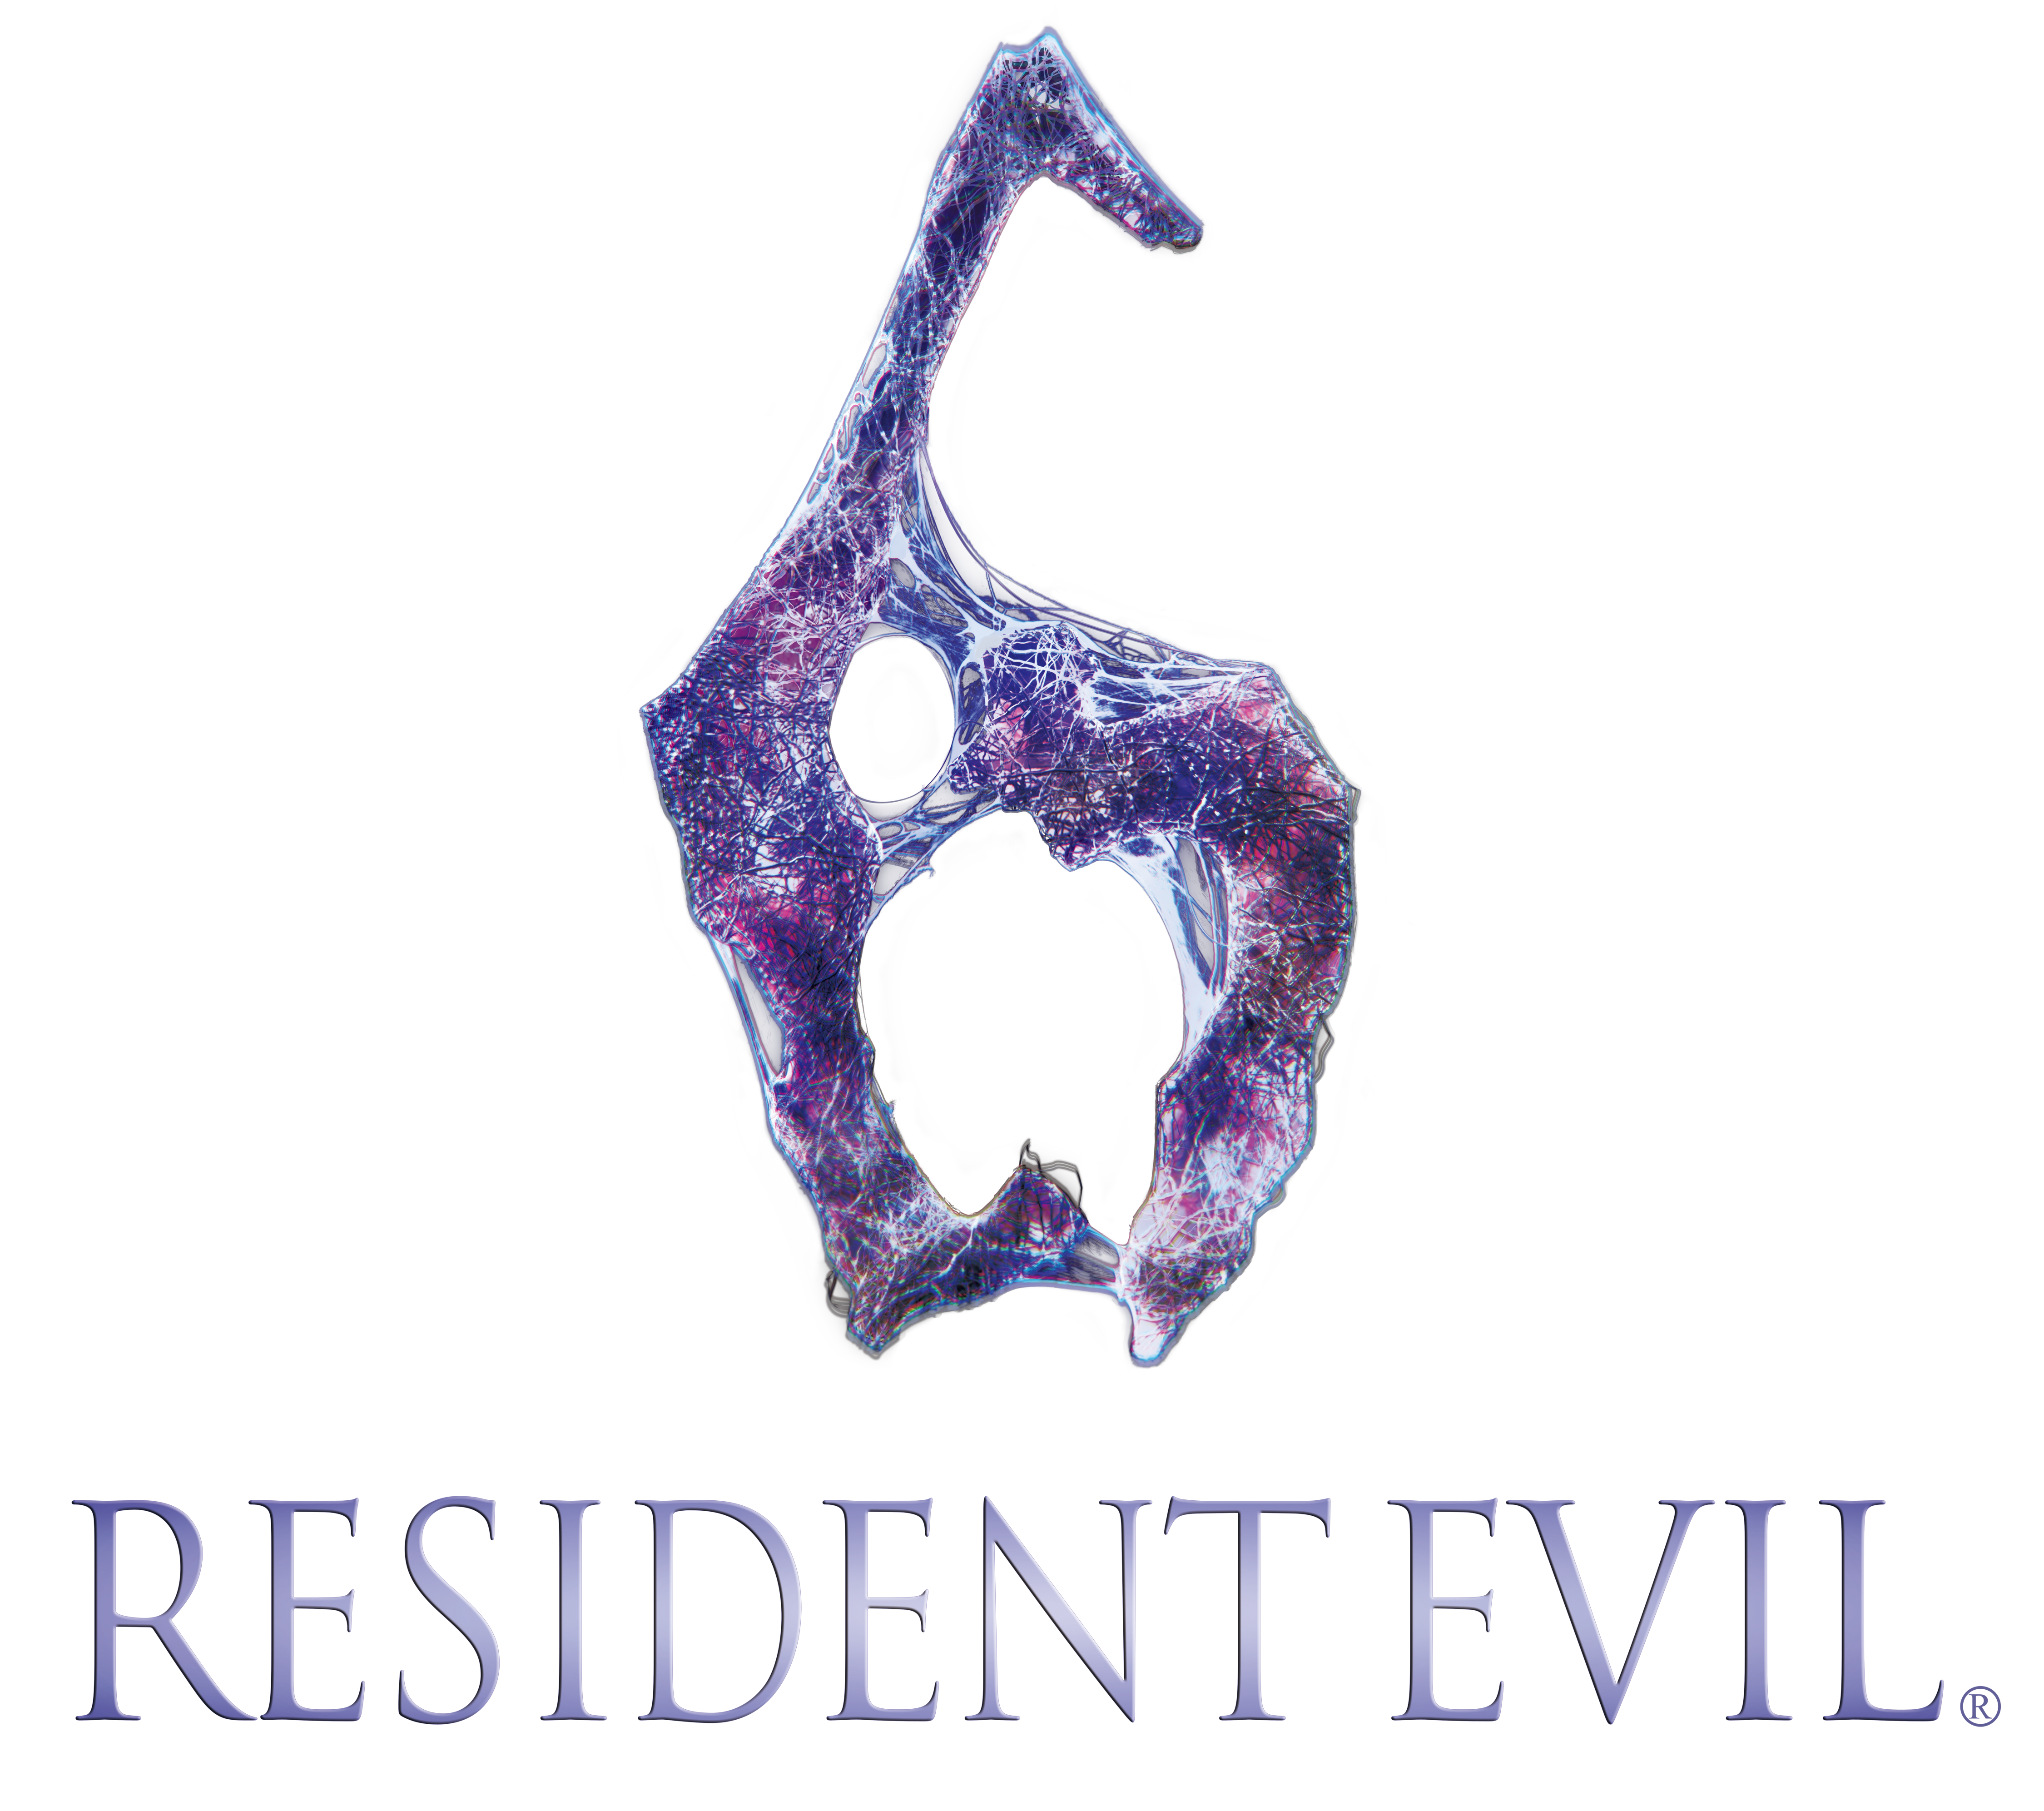 Скачать PATCH Resident Evil 6 Update 1 (Официальный) MULTi торрент.